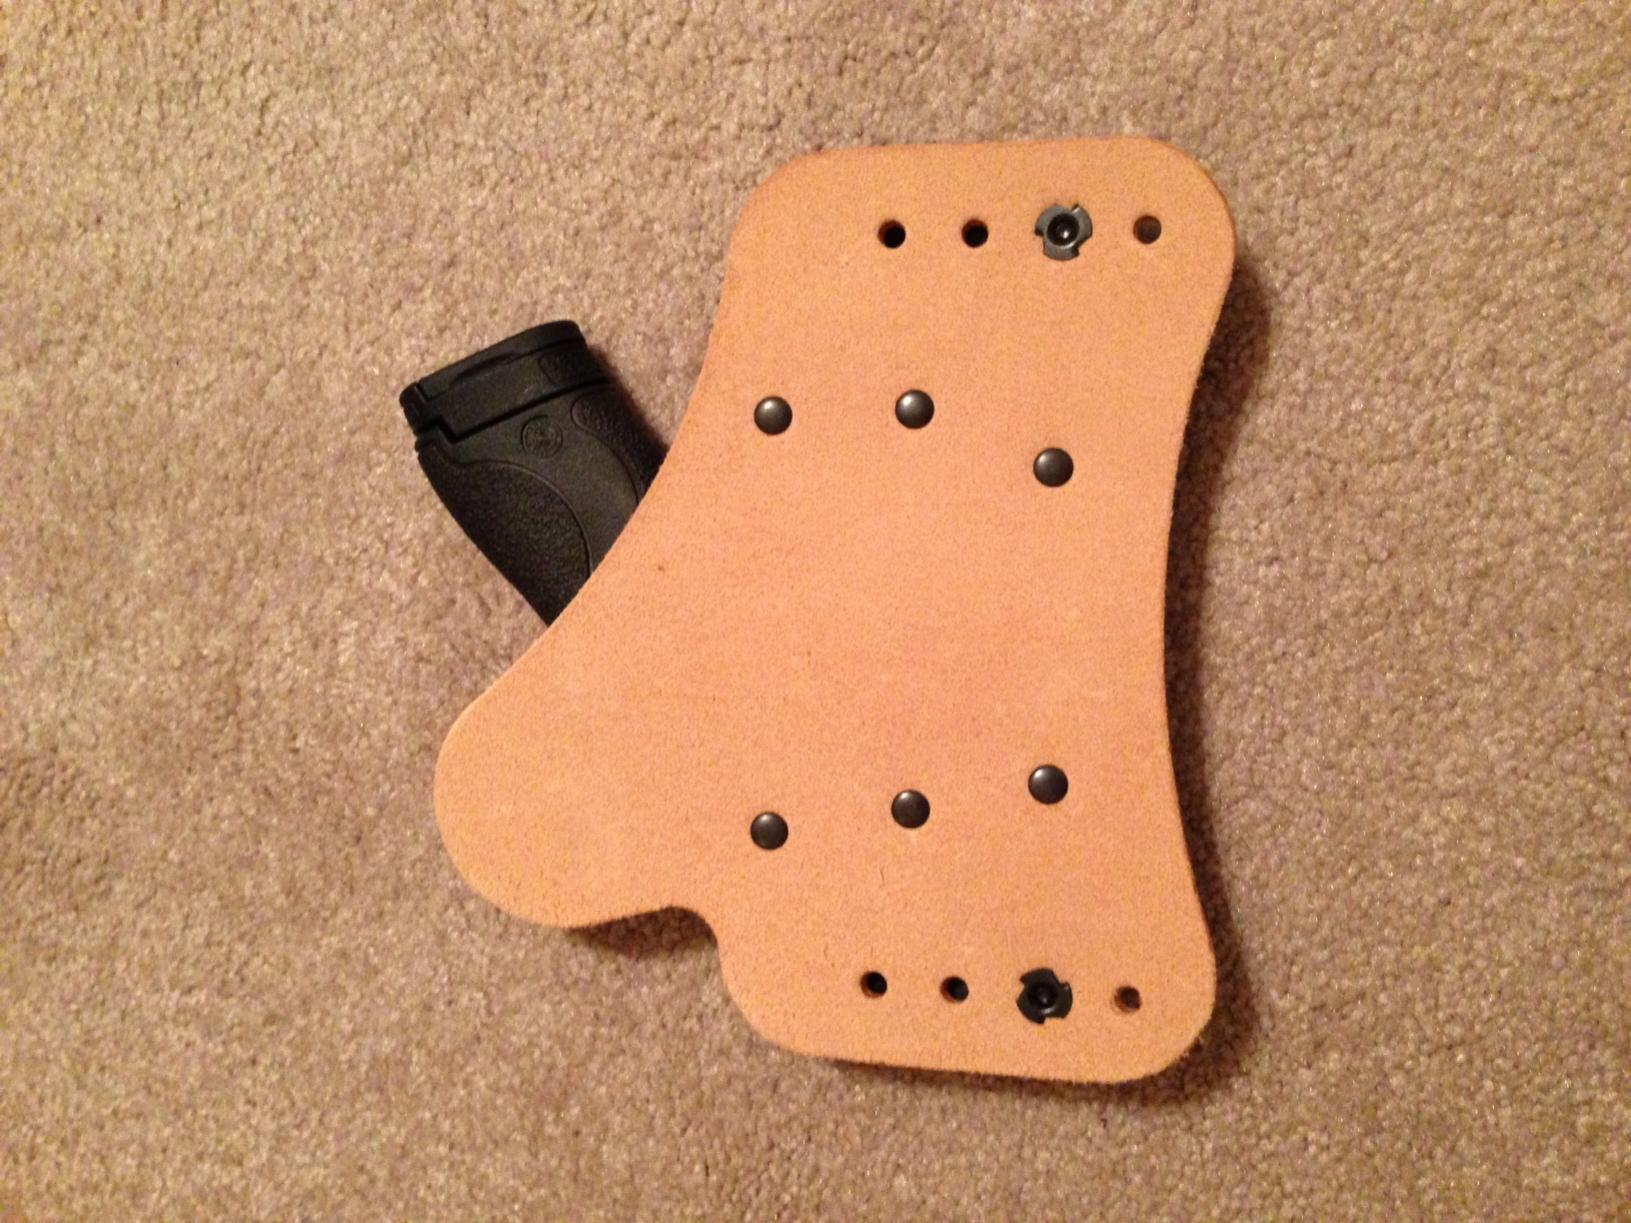 My Vedder Holsters Comforttuck review for my Shield 9mm-photo-2.jpg